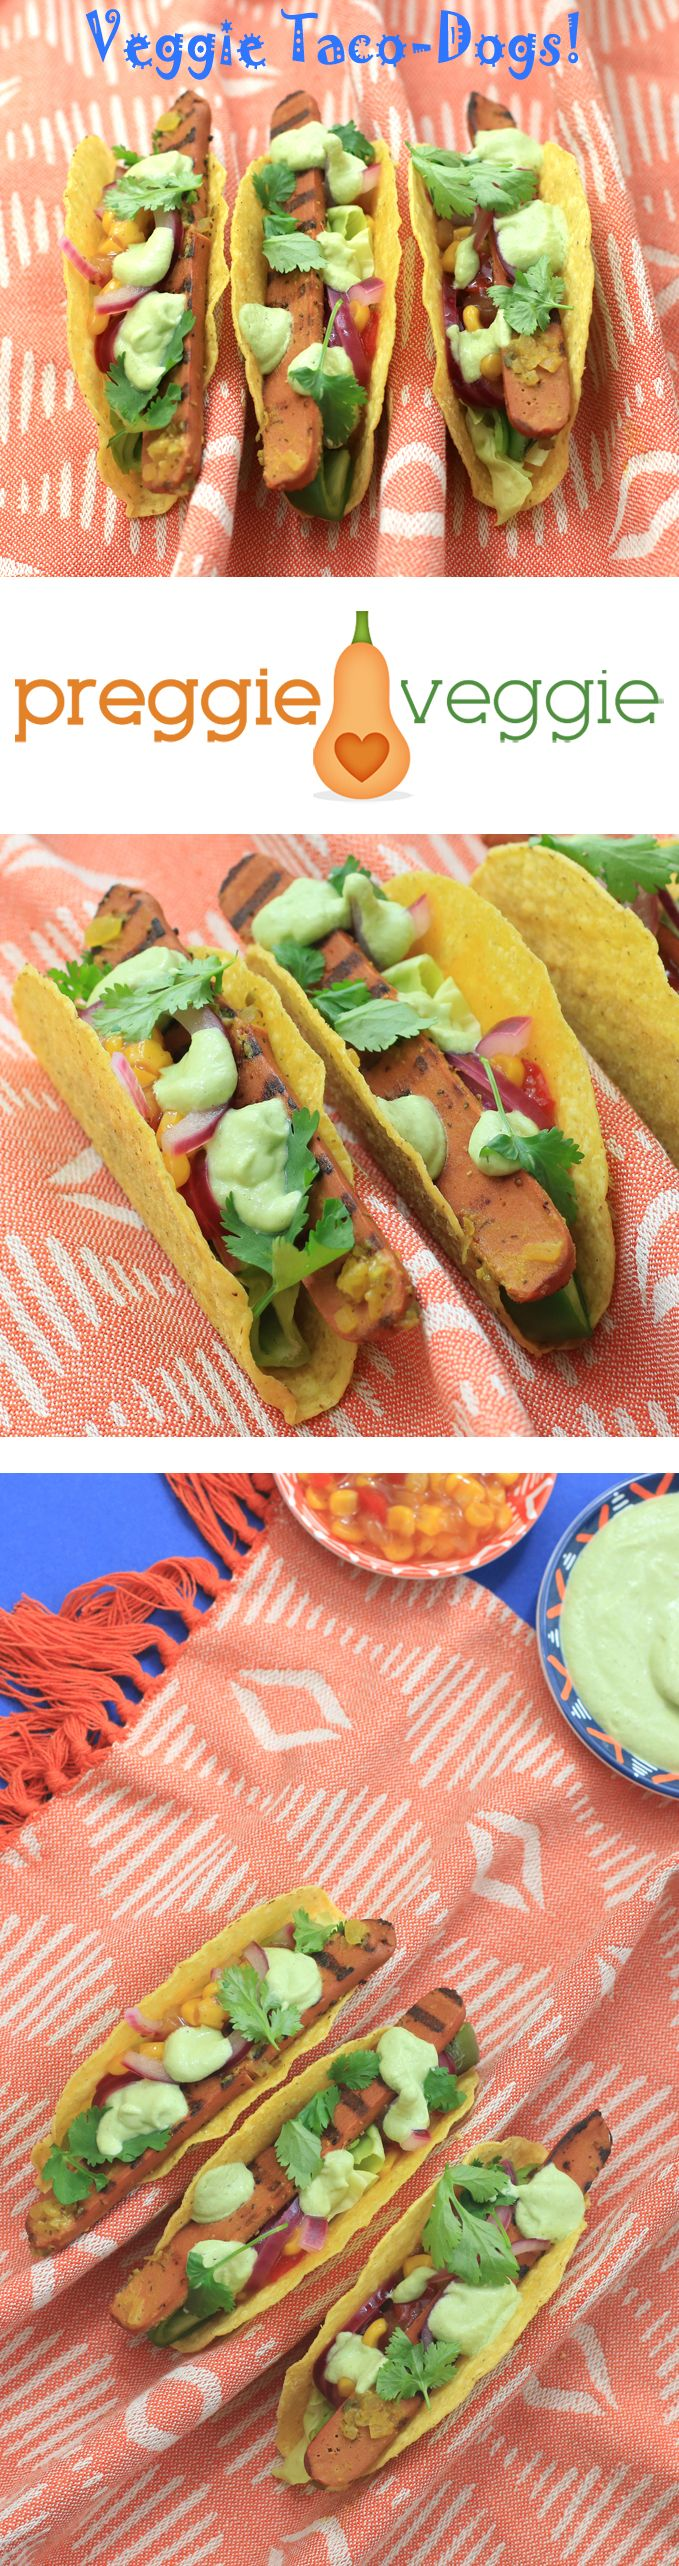 Super fun and easy vegetarian taco-dogs! Veggie hot dogs with all the trimmings, plus a vegan avocado and jalapeno crema. #vegetarian #taco #hotdogs #recipes #funfood #bunsareboring